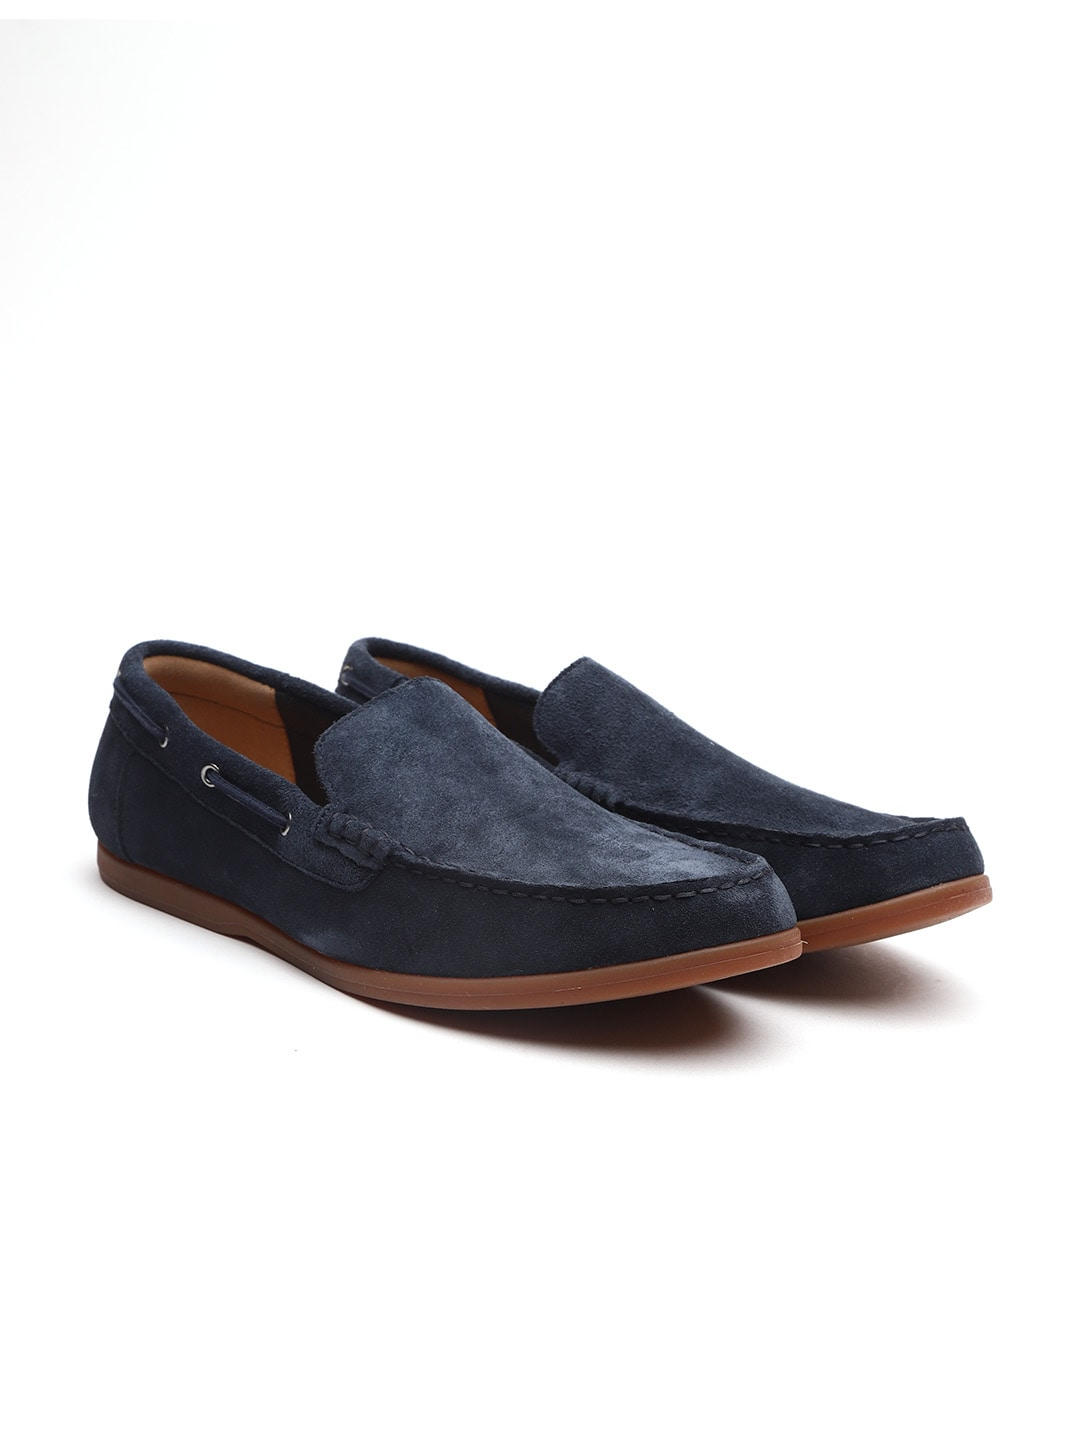 b69e89386228 CLARKS - Exclusive Clarks Shoes Online Store in India - Myntra